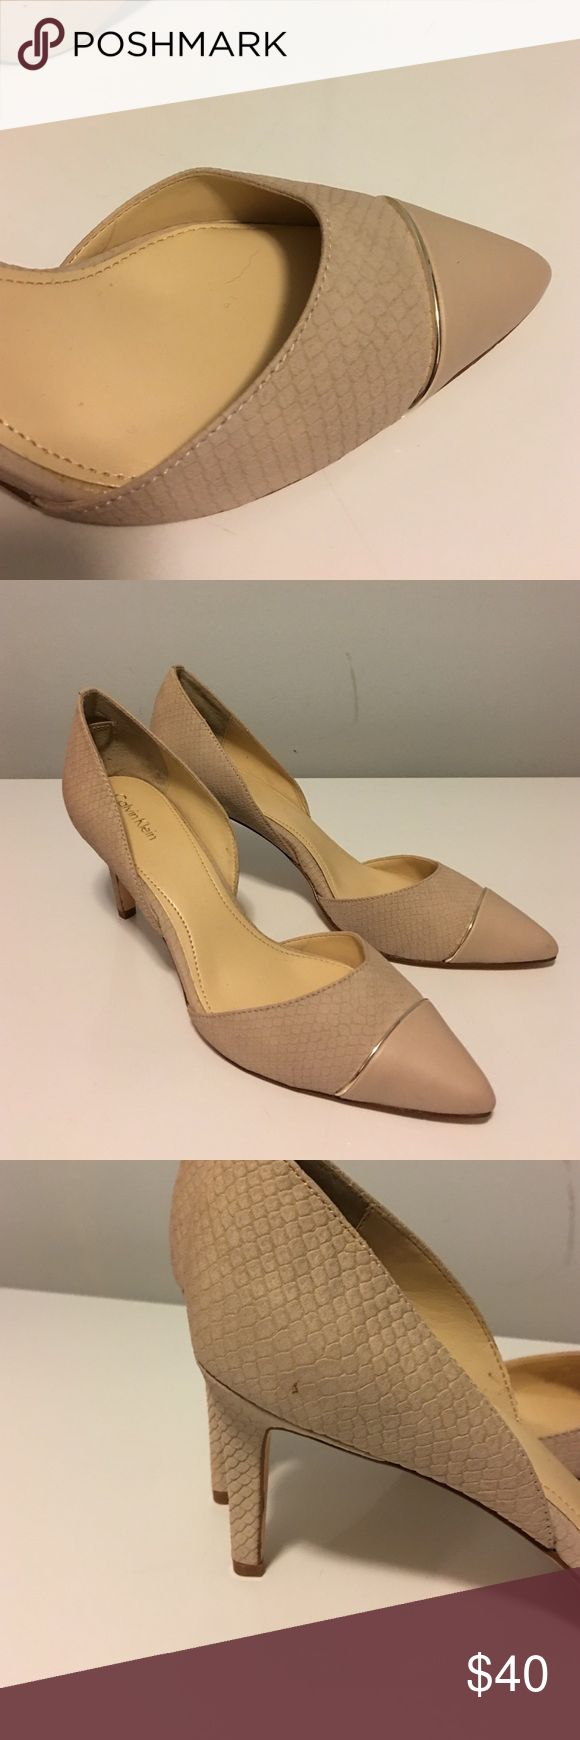 Calvin Klein pumps, size 10 Brand new never worn tan leather pumps with silver trim, women's size 10 Calvin Klein Shoes Heels